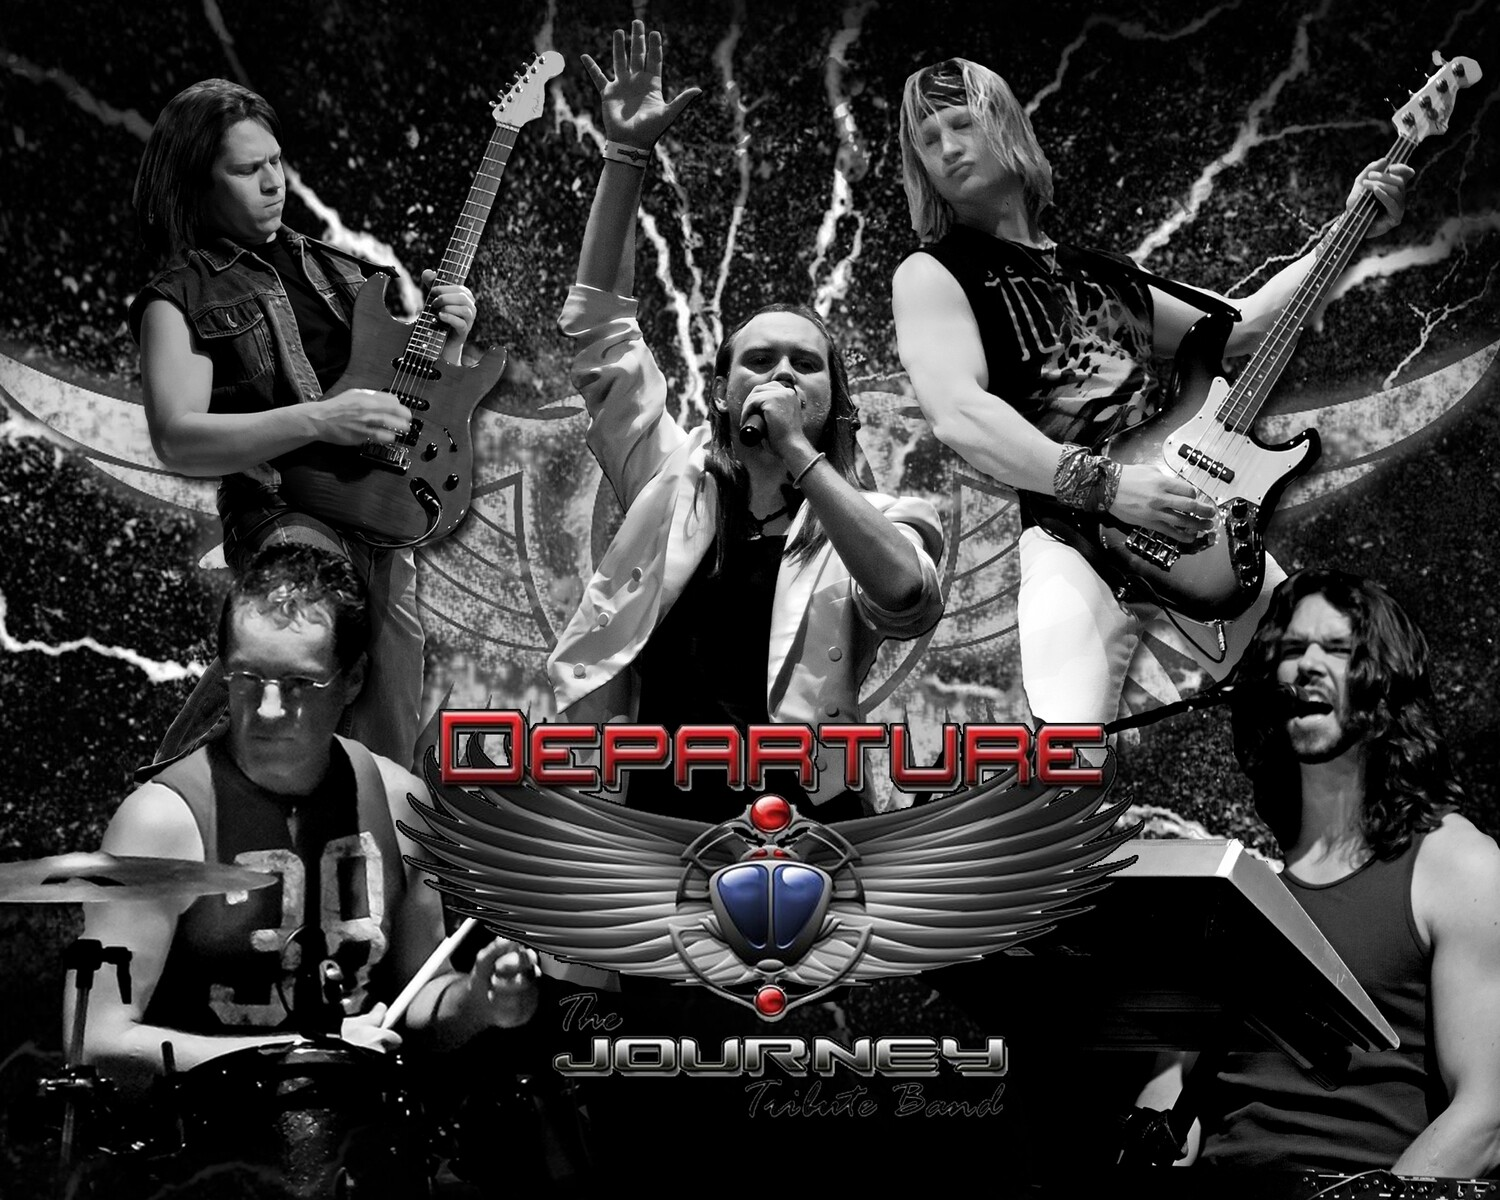 DEPARTURE (#1 JOURNEY Tribute Band) GA TICKET OCT 22nd 9:00 pm